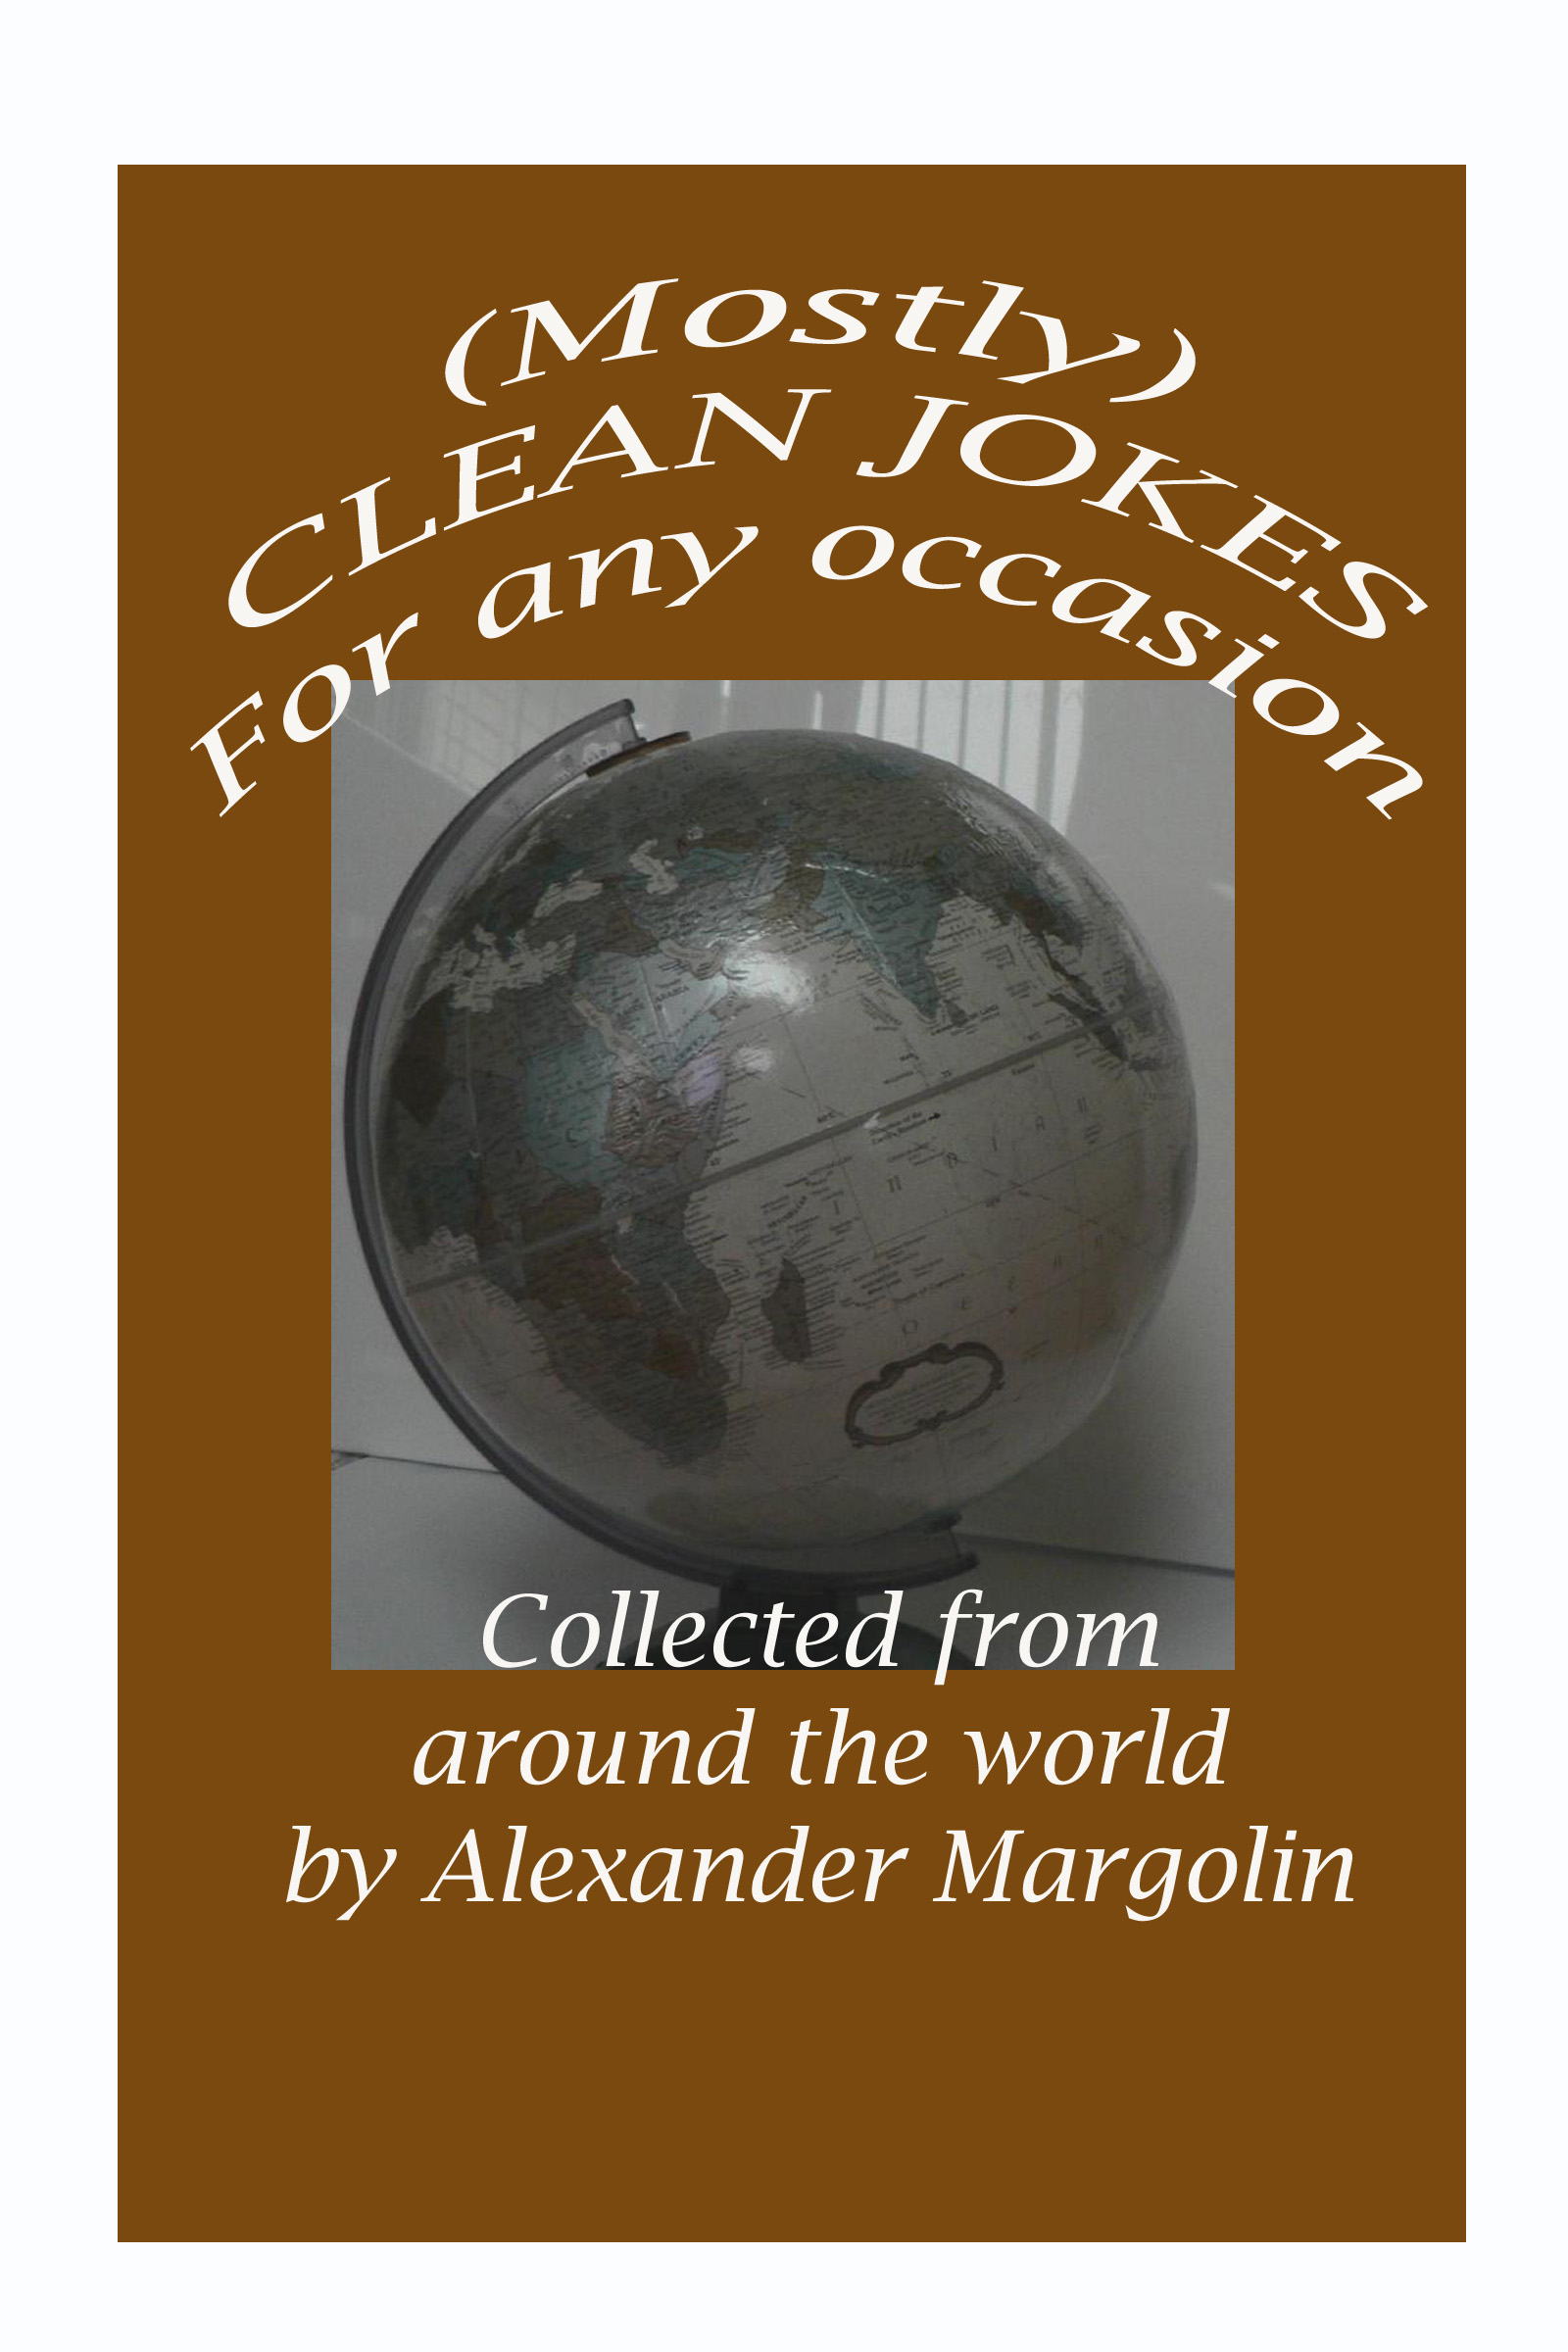 (Mostly) CLEAN JOKES for any occasion, an Ebook by Alexander Margolin